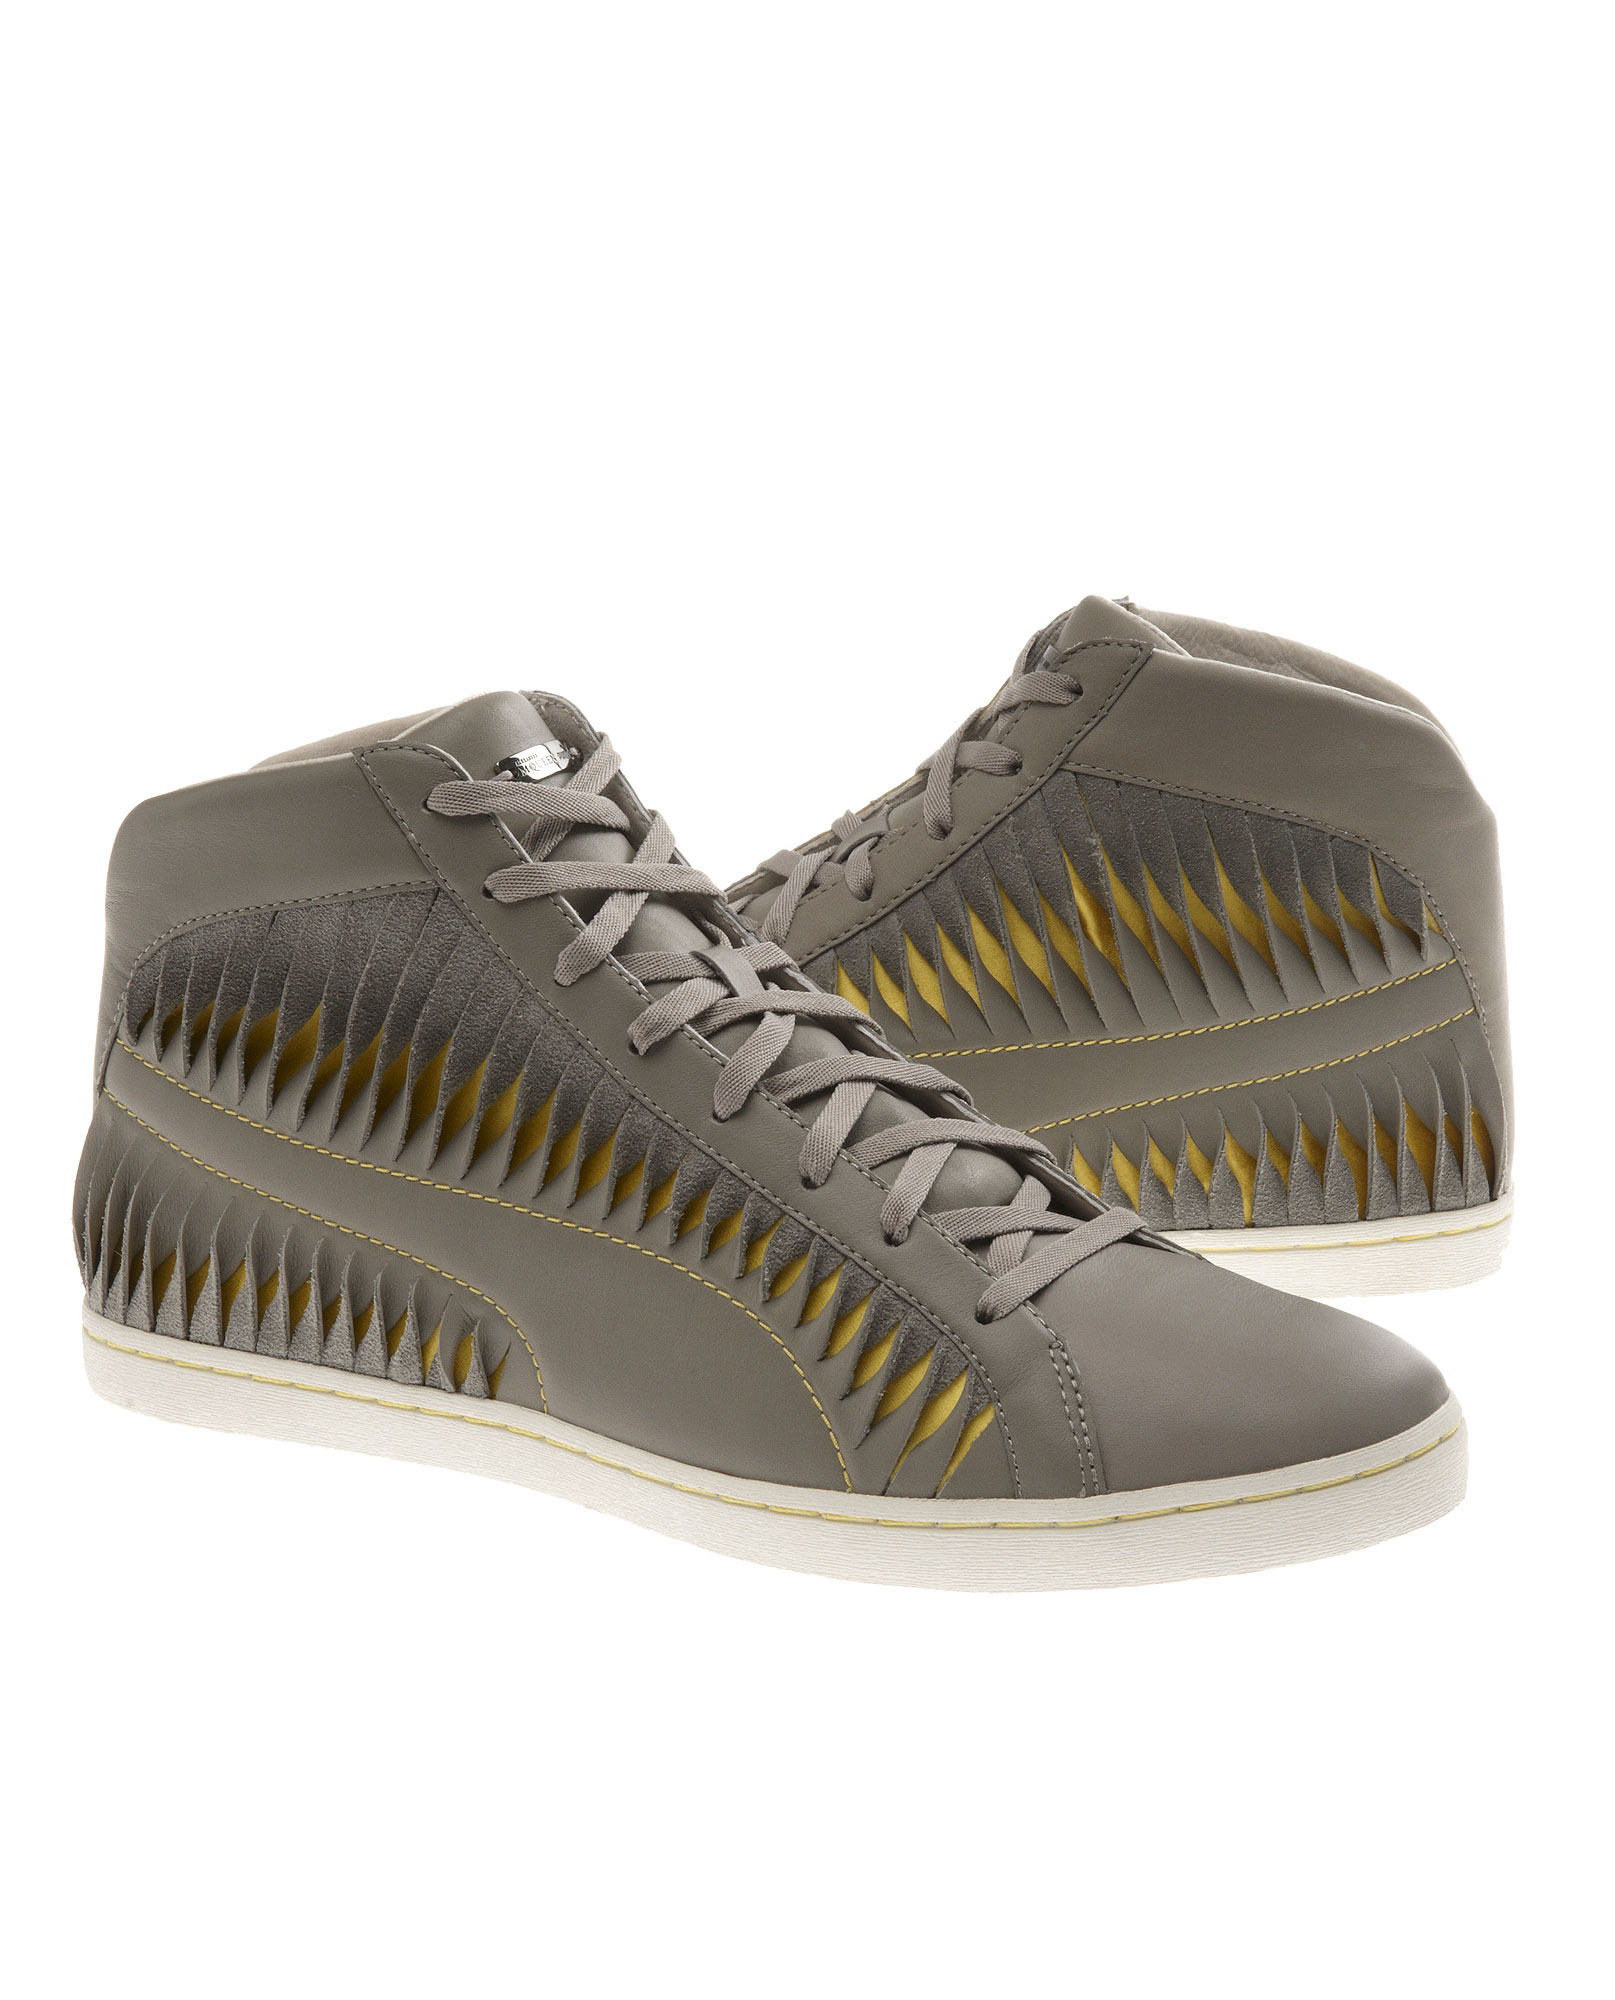 online store 613d9 1dc73 Alexander McQueen X Puma Twisted Leather Hi-tops in Gray for Men - Lyst